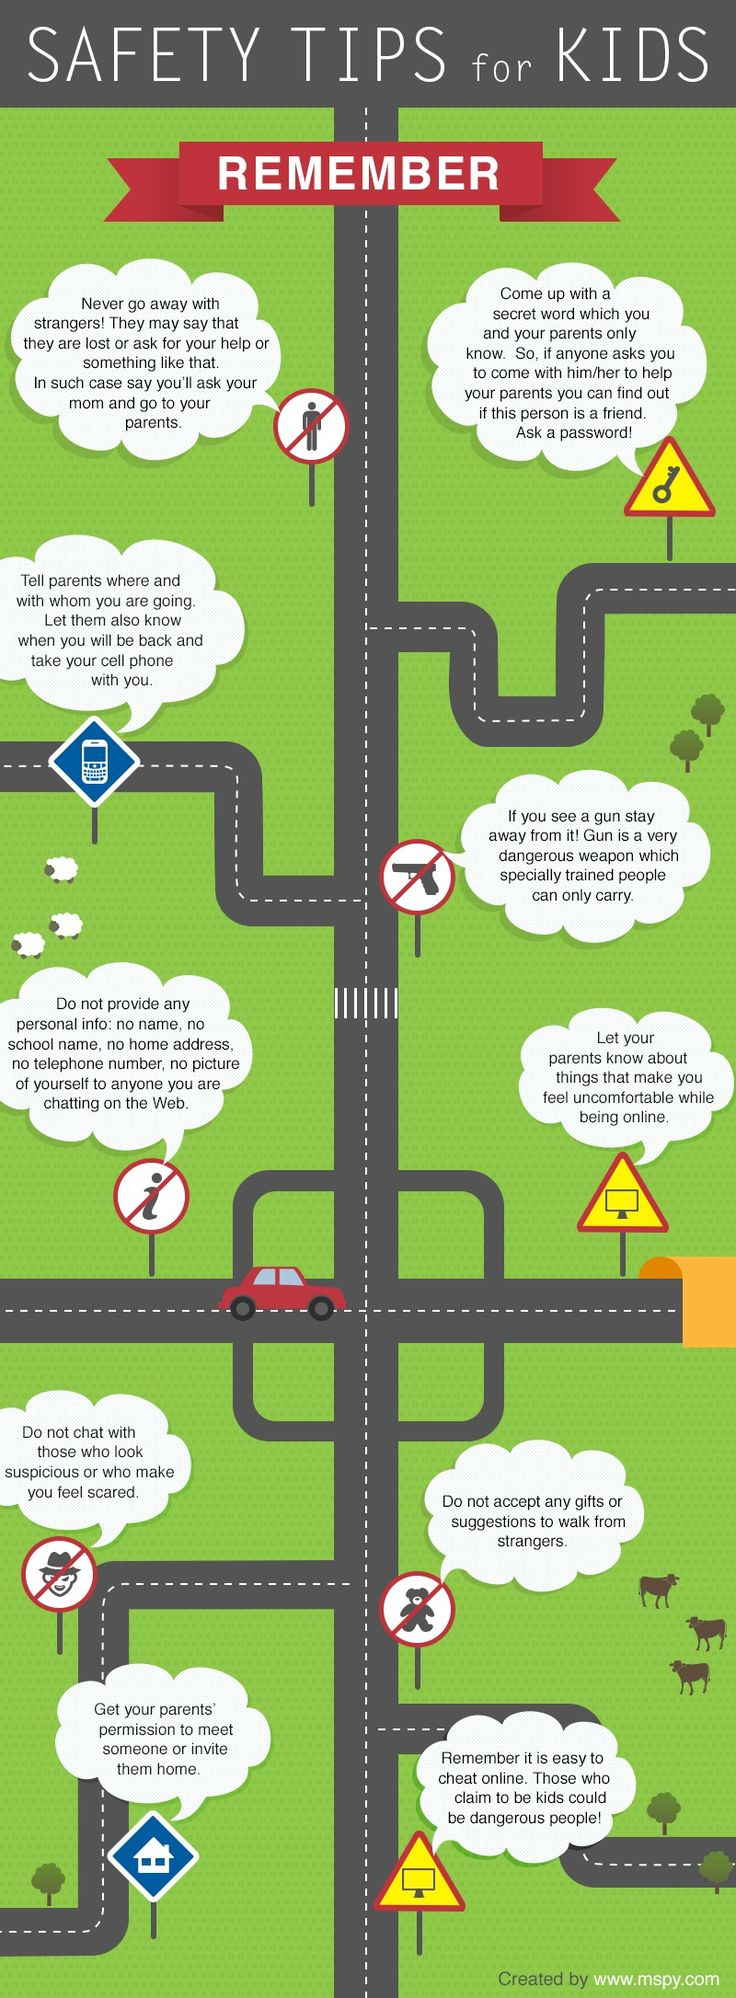 26 best safety tips images on pinterest safety tips personal